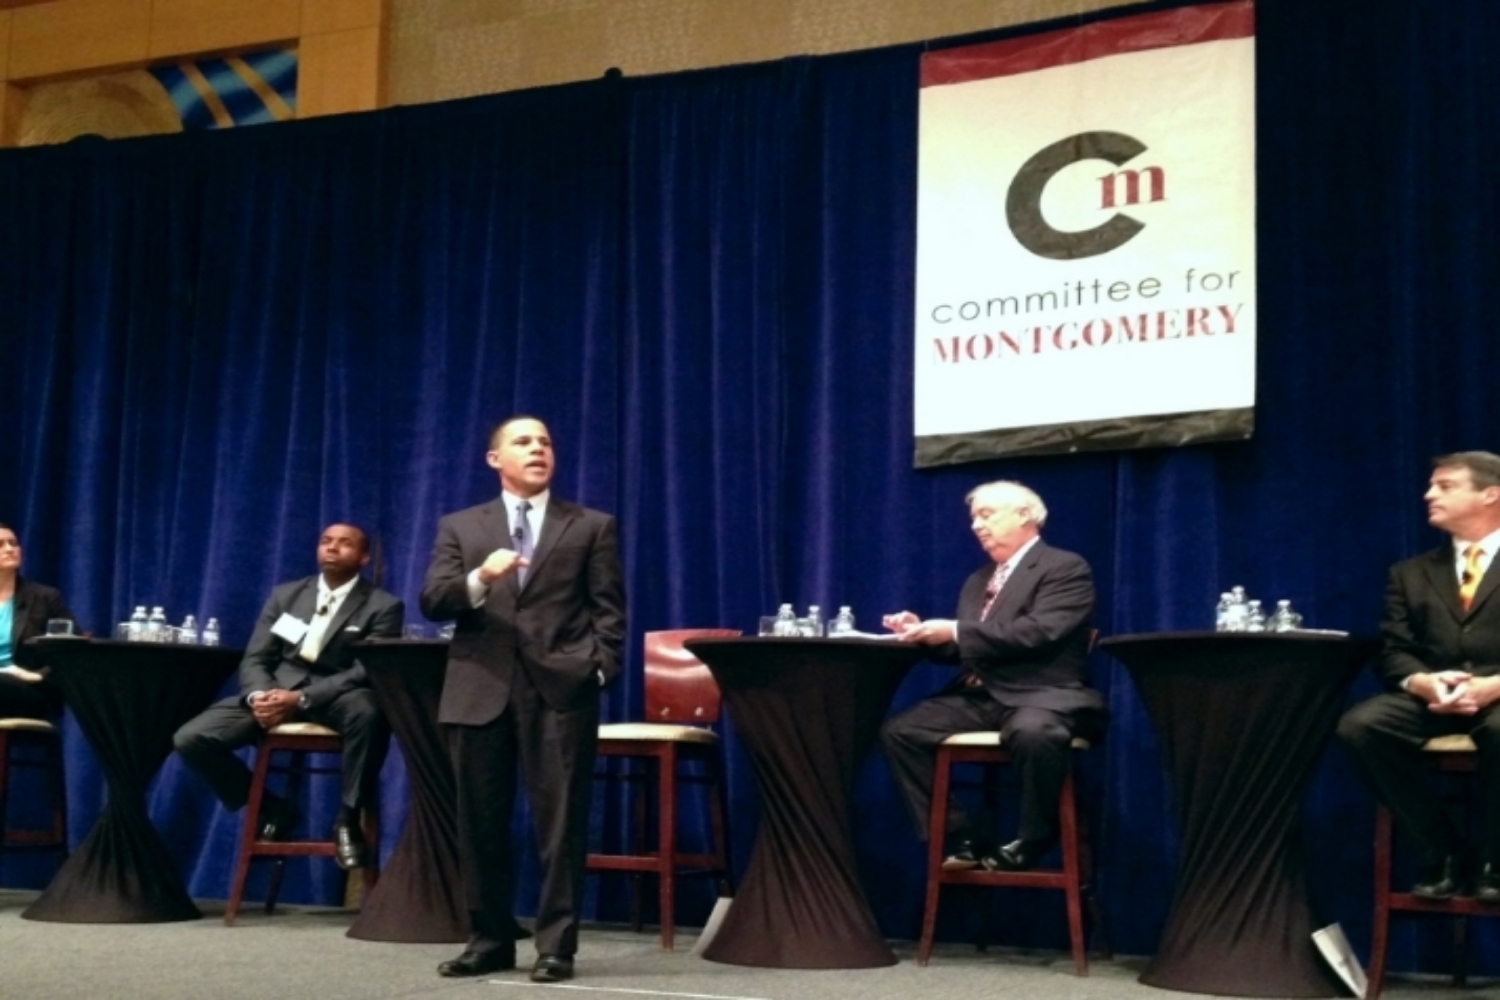 2013 CfM Breakfast featured all Democratic and Republican Candidates for Governor